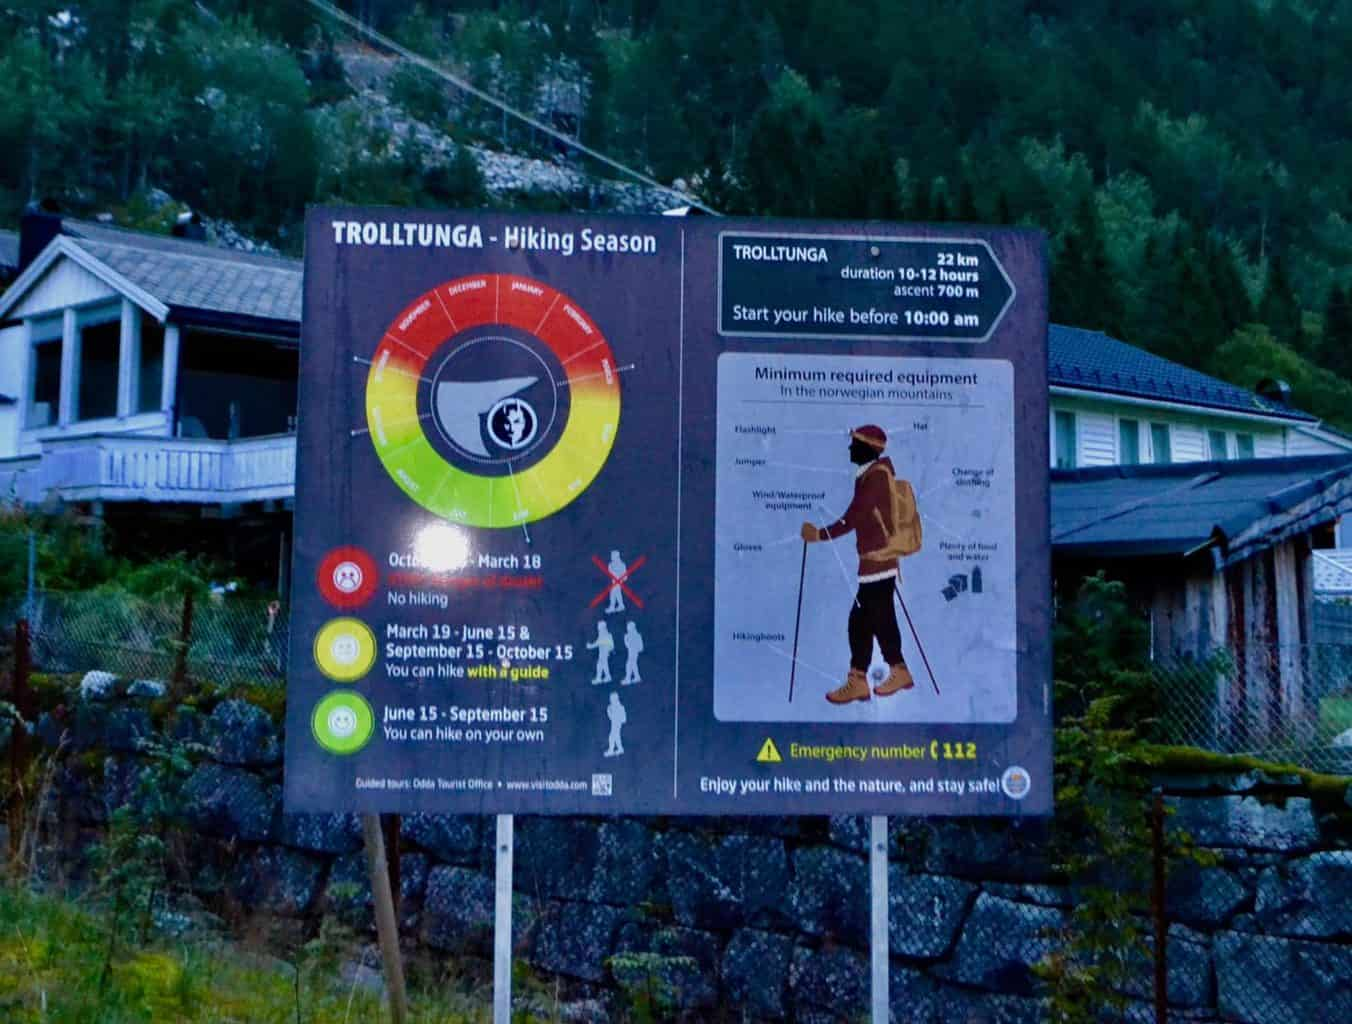 Signage at the start of the Trolltunga hike